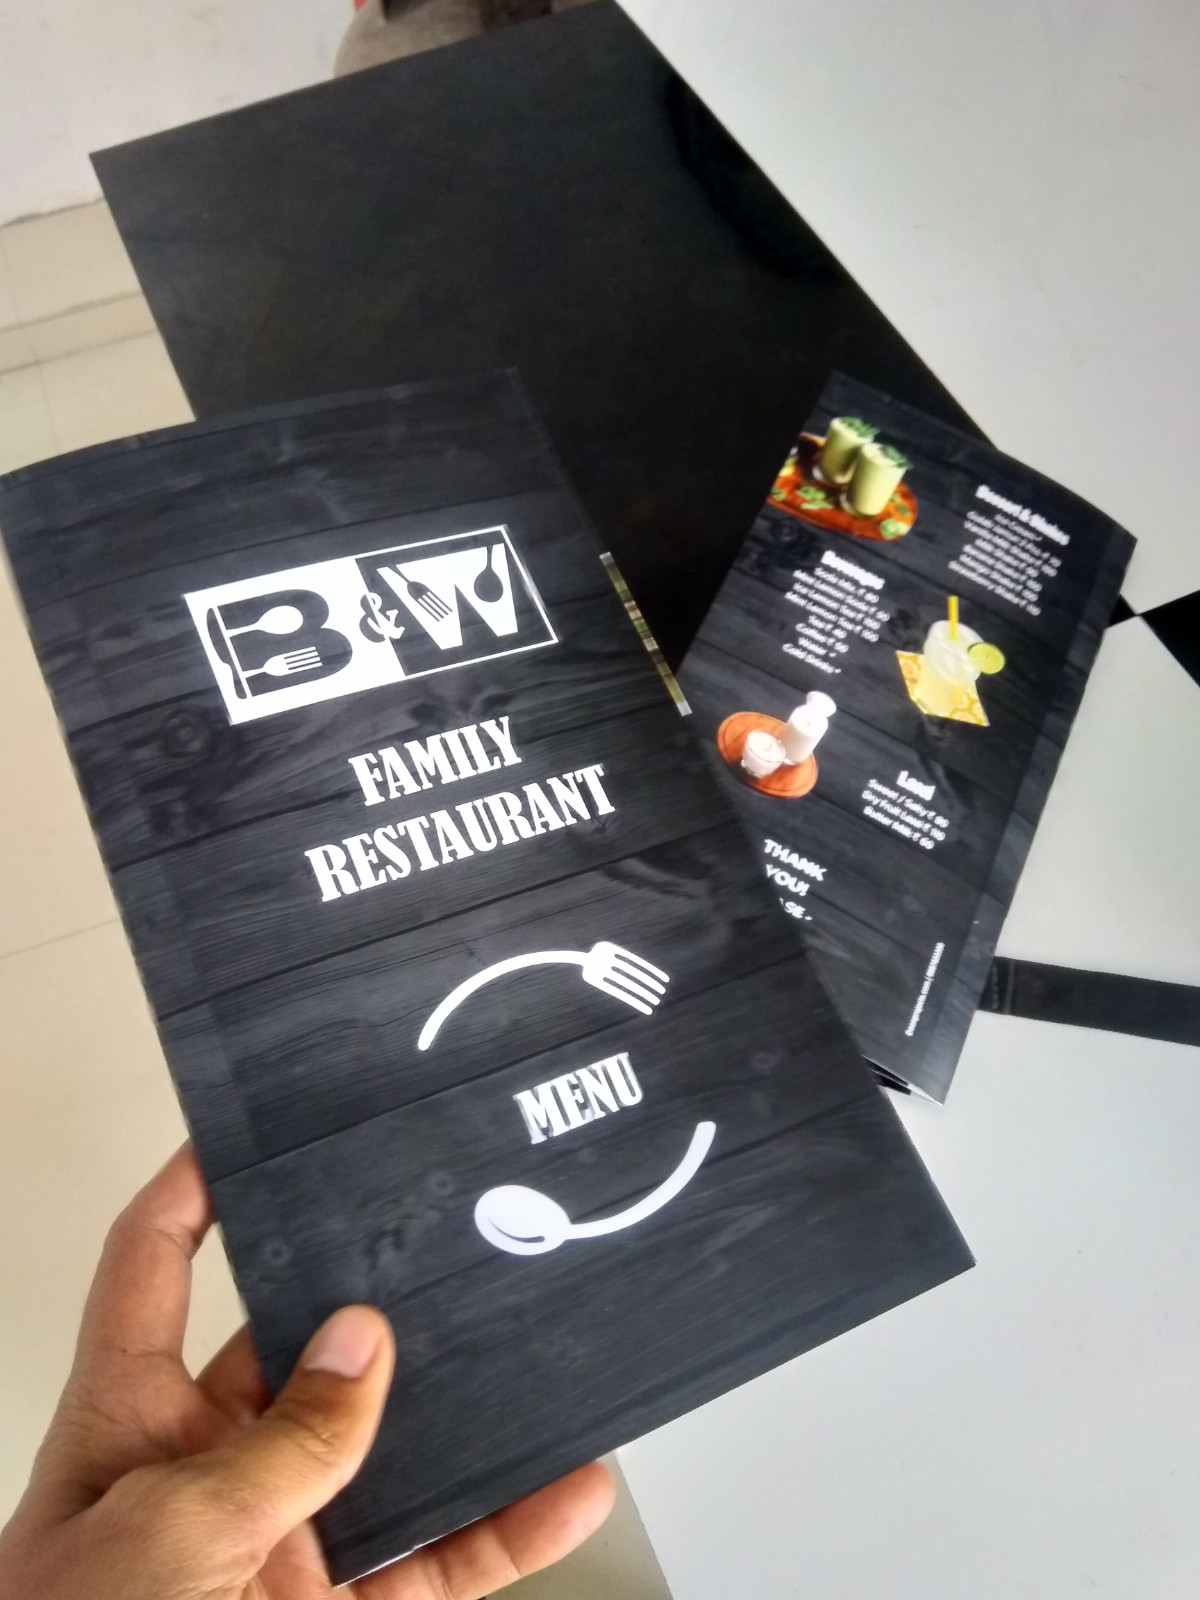 Menu Card Designed for Black & White Restaurant